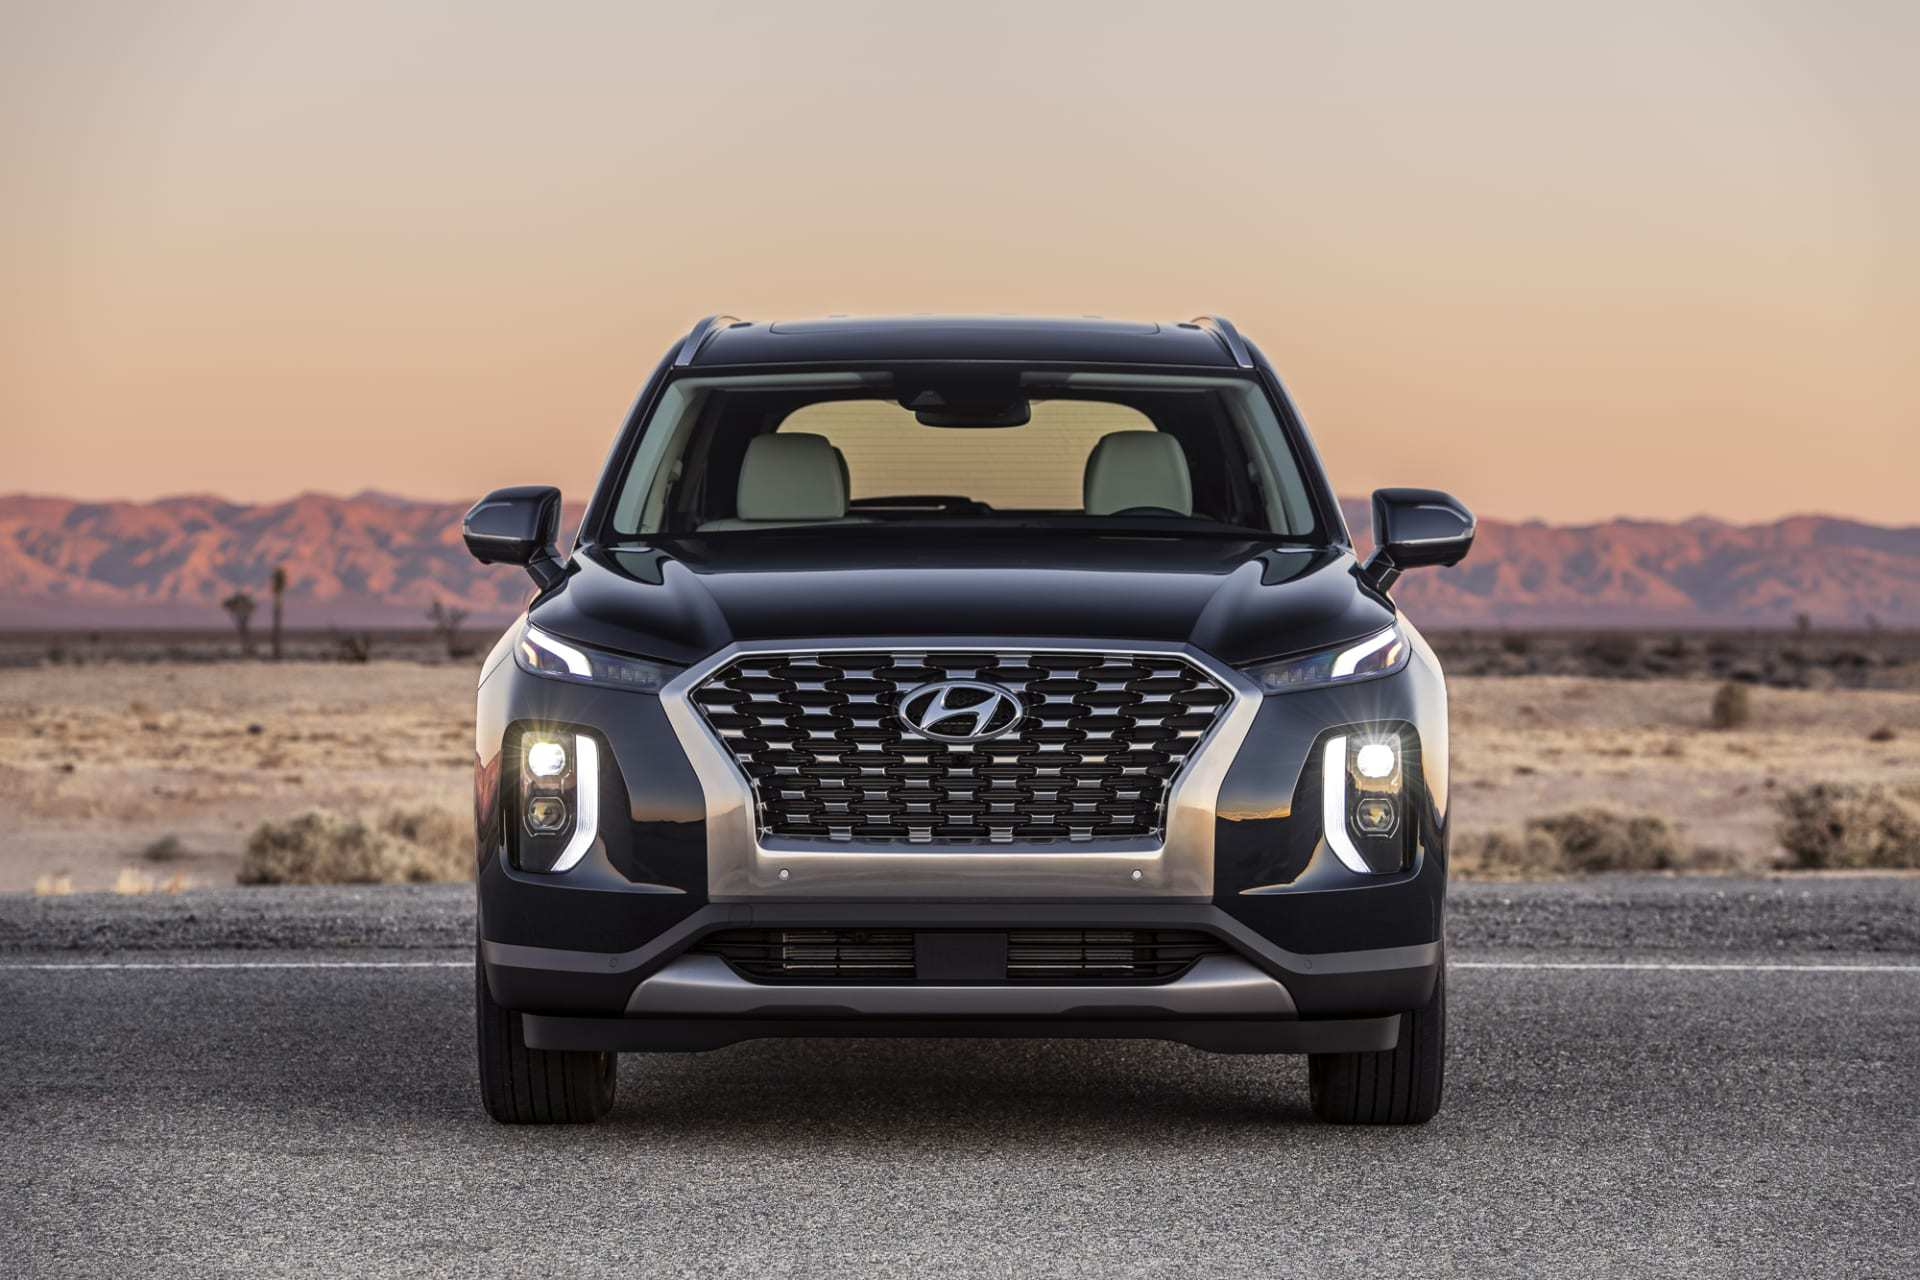 32 All New When Will The 2020 Hyundai Palisade Be Available History with When Will The 2020 Hyundai Palisade Be Available